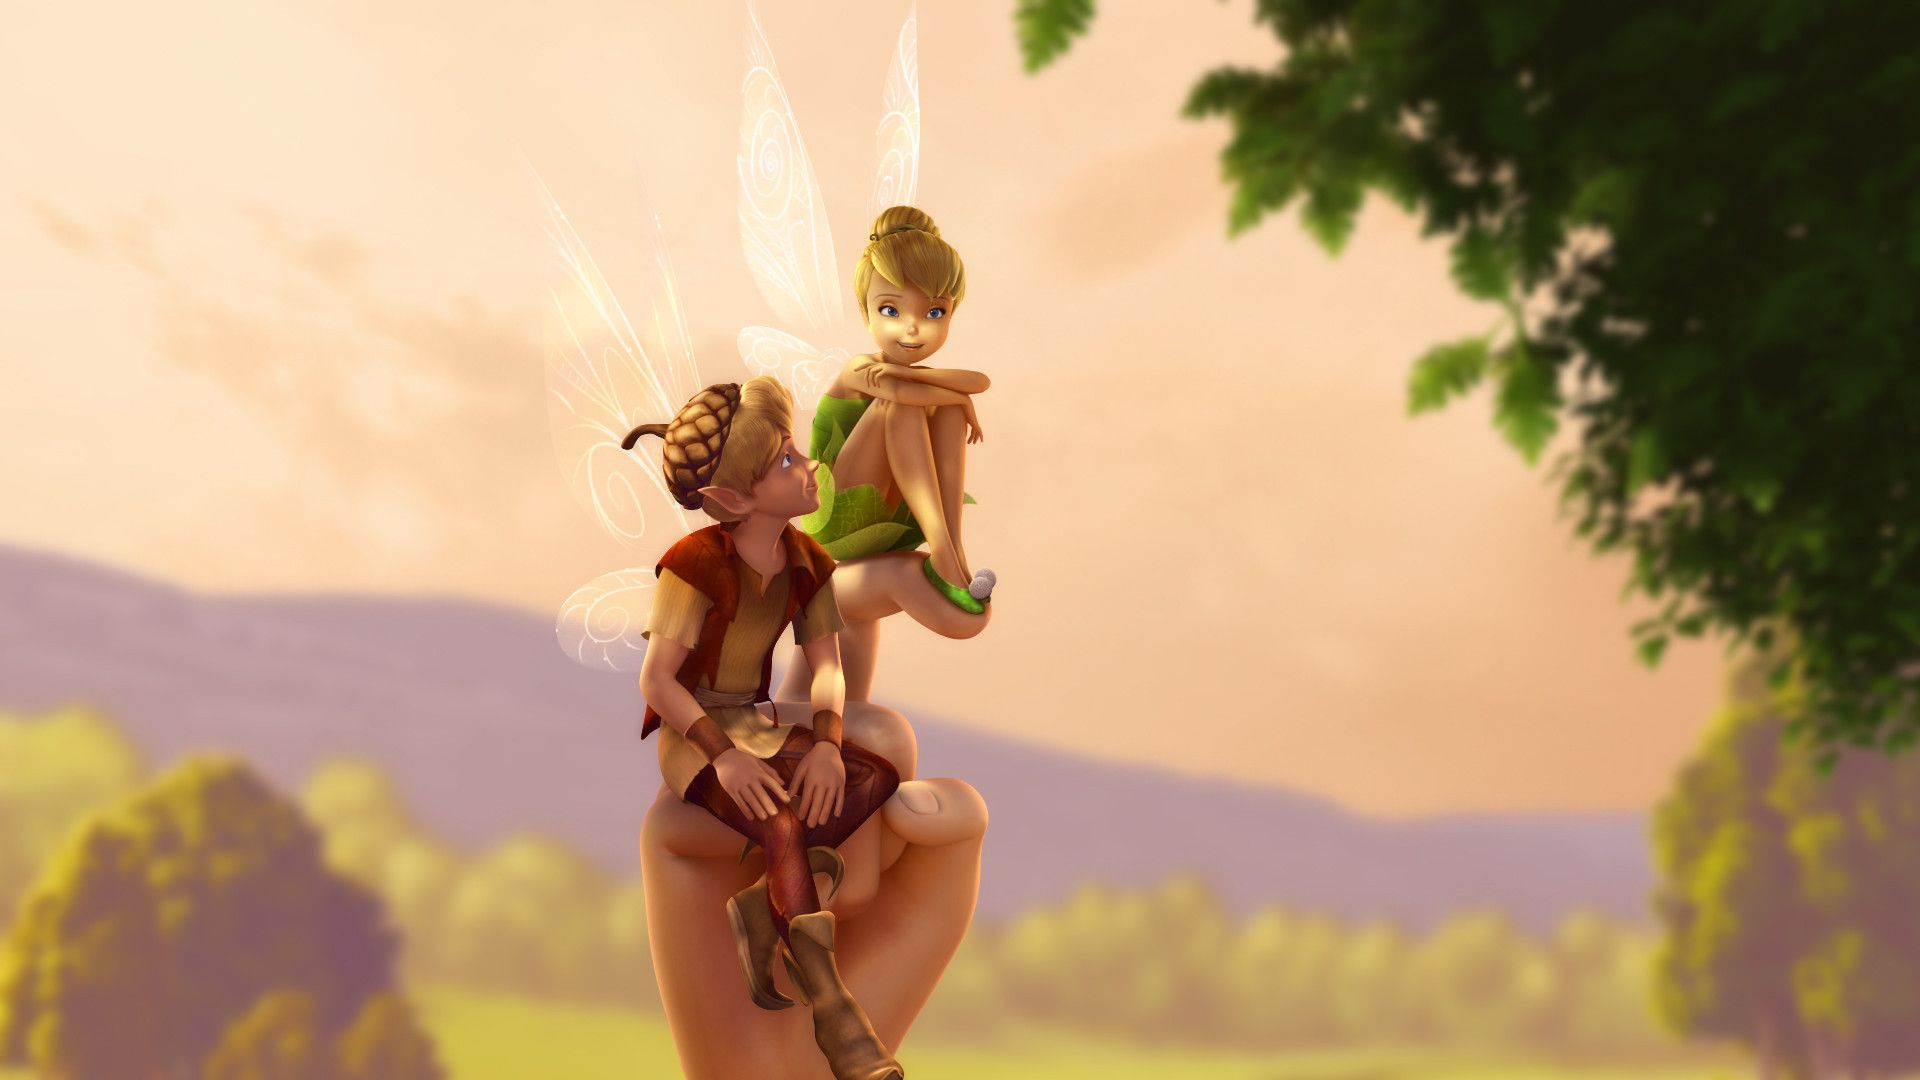 Tinker bell desnuda sexy galleries